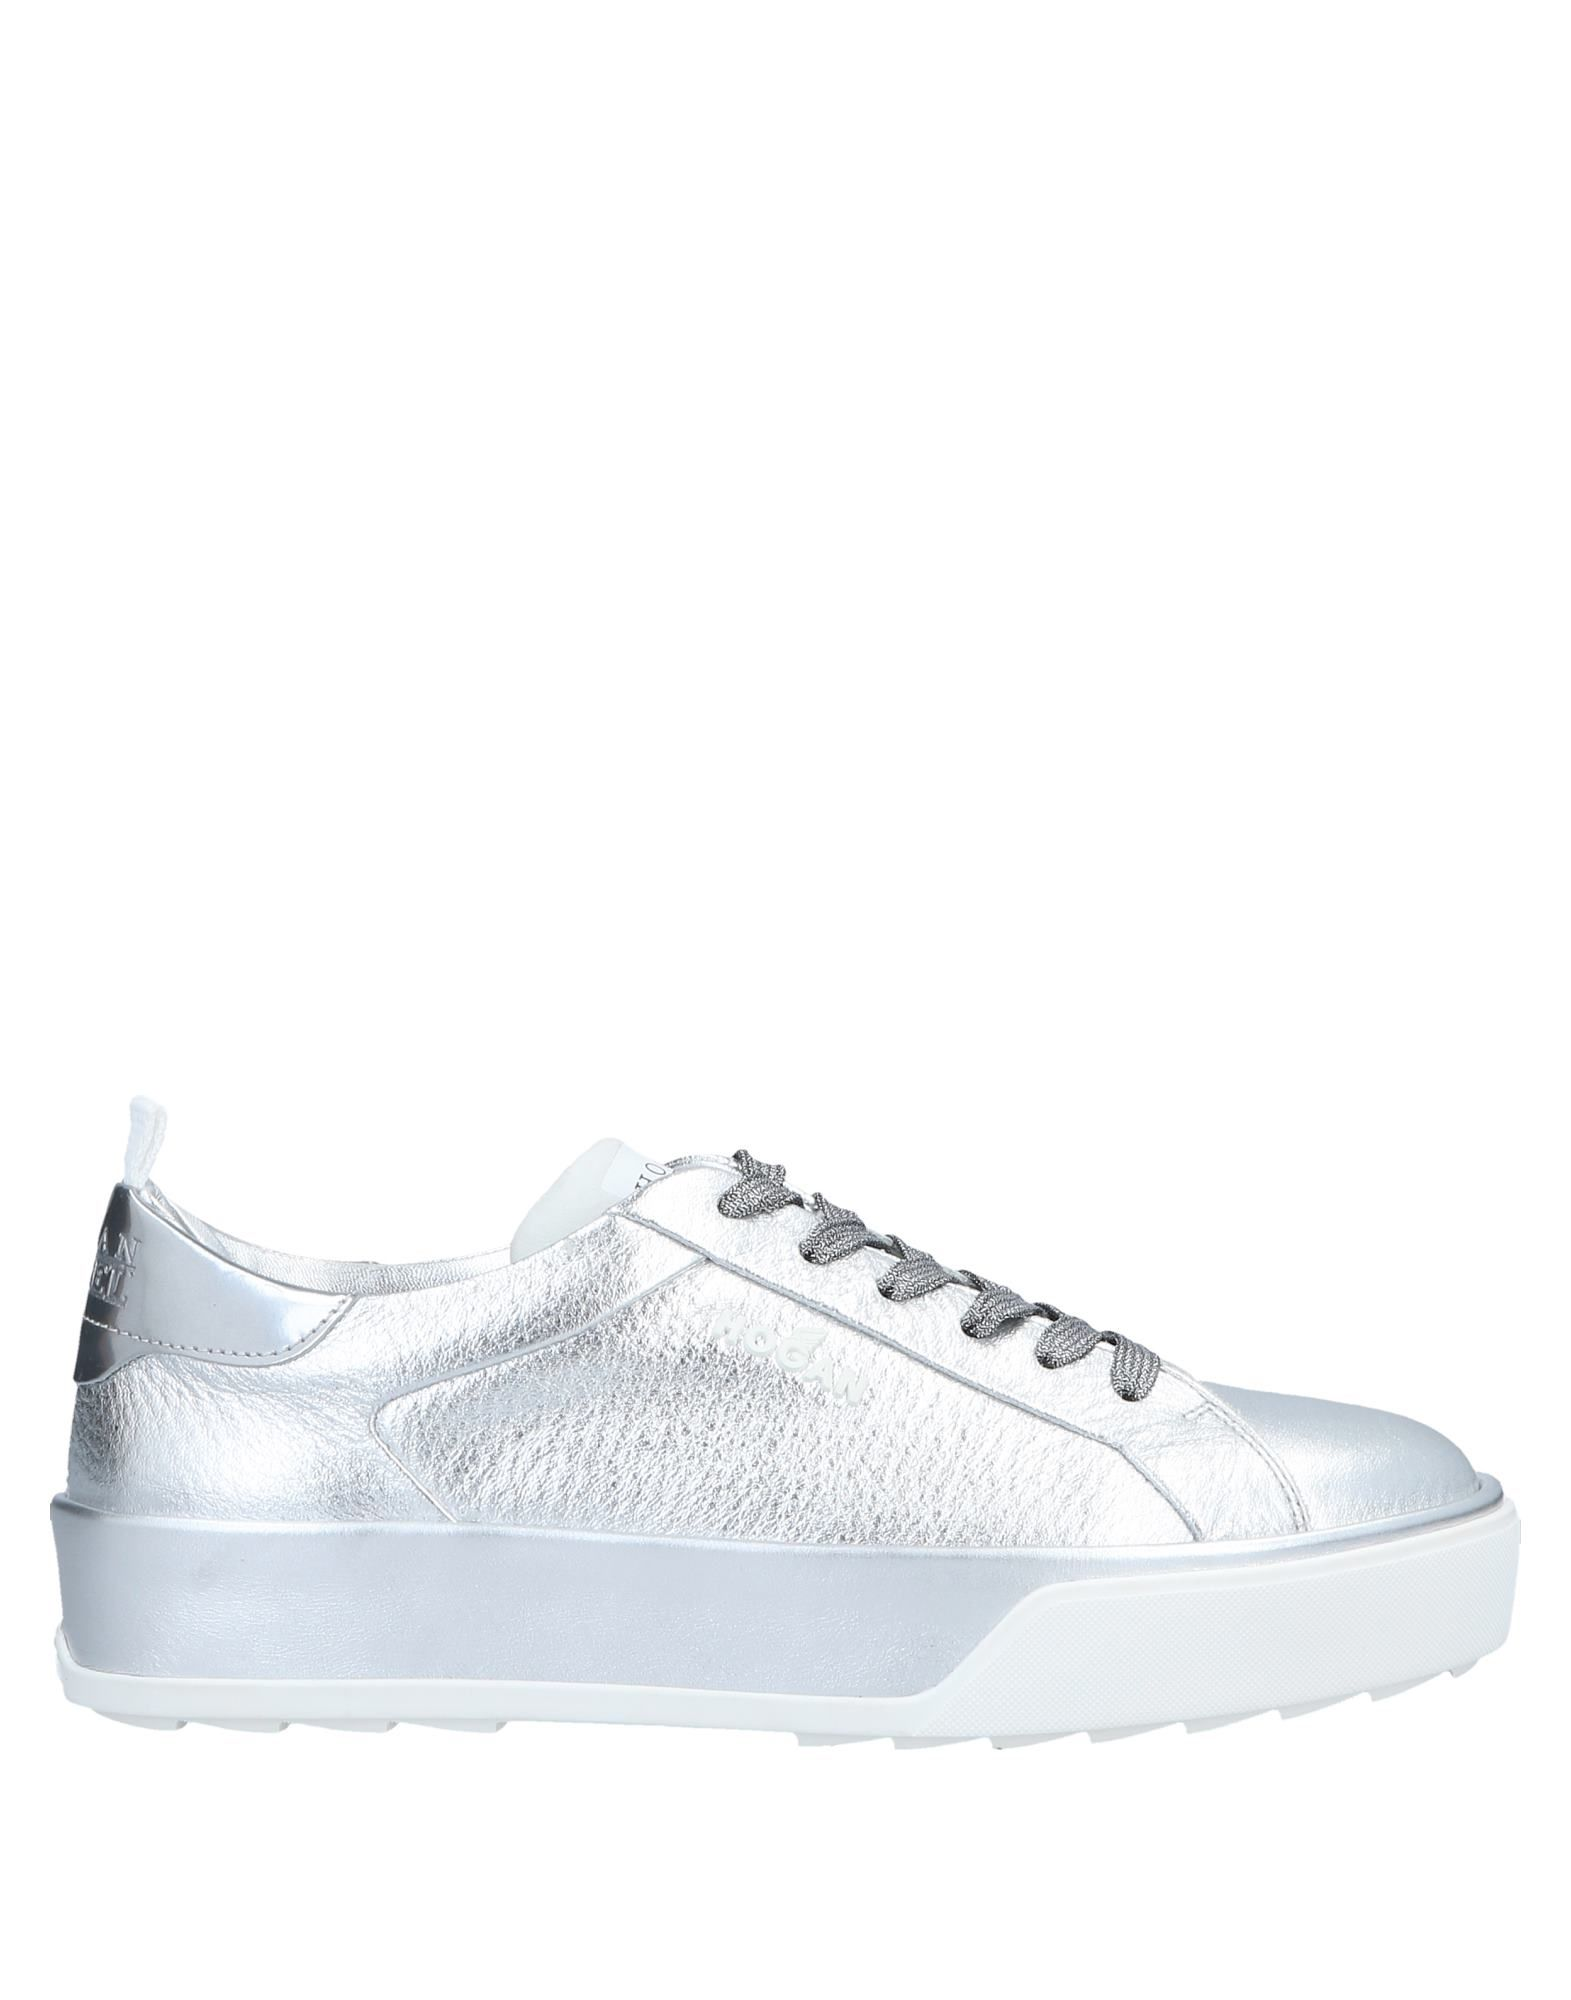 Hogan Rebel Sneakers - Women on Hogan Rebel Sneakers online on Women  United Kingdom - 11564621UU 9435cc